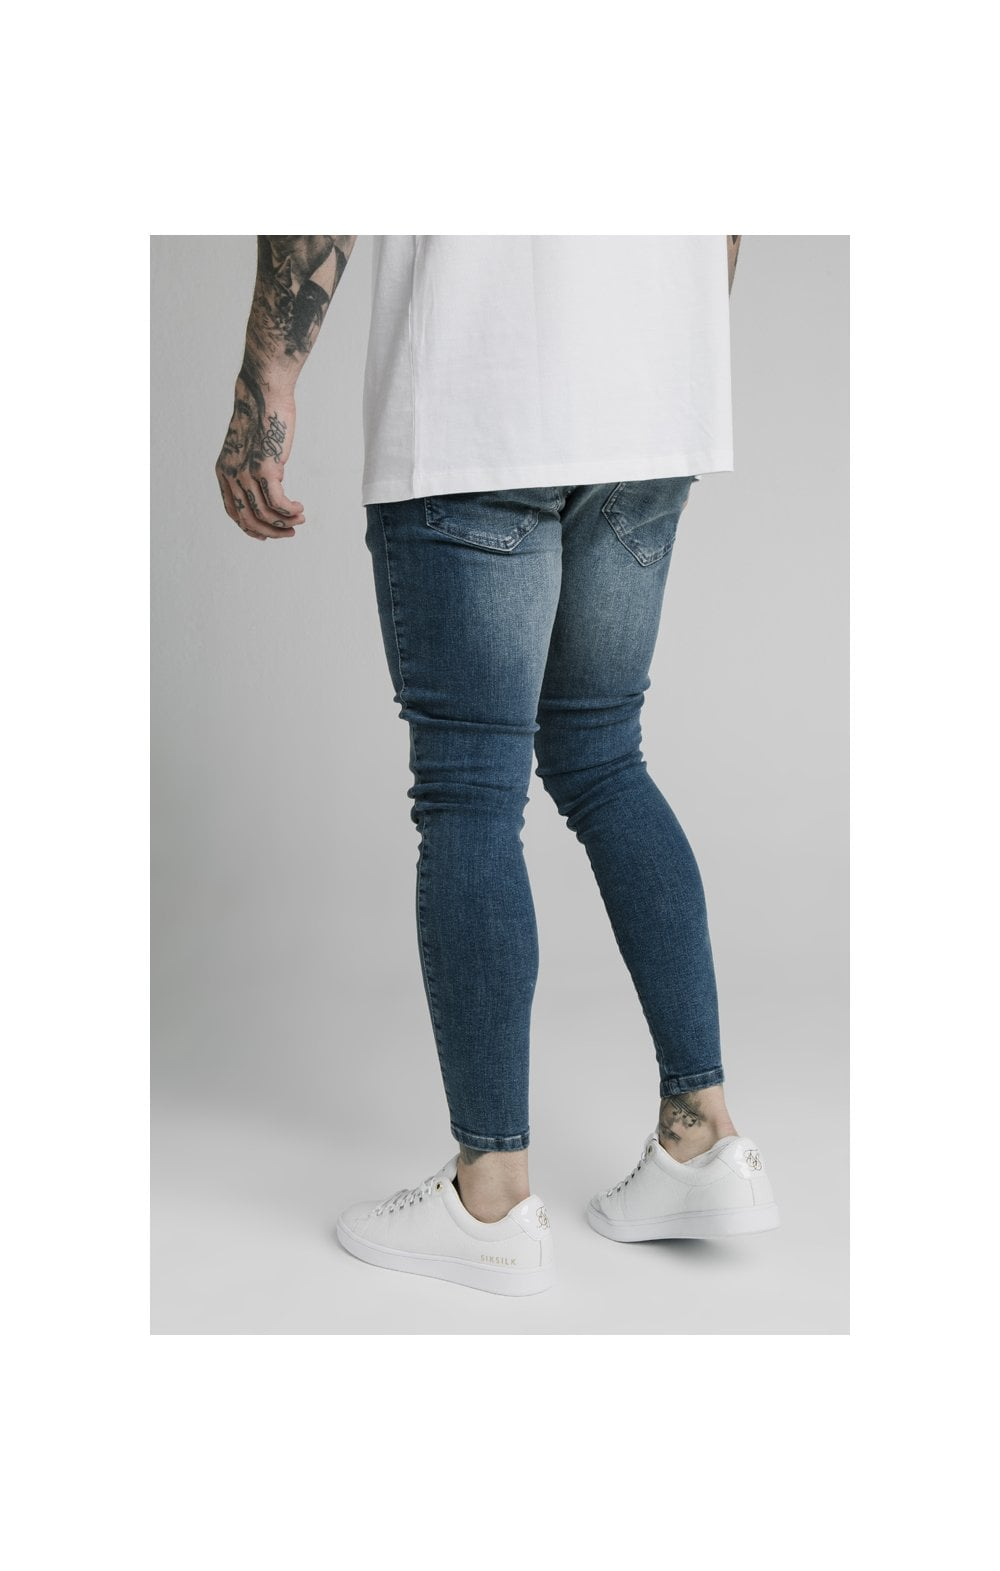 SikSilk Skinny Denim – Midstone (4)